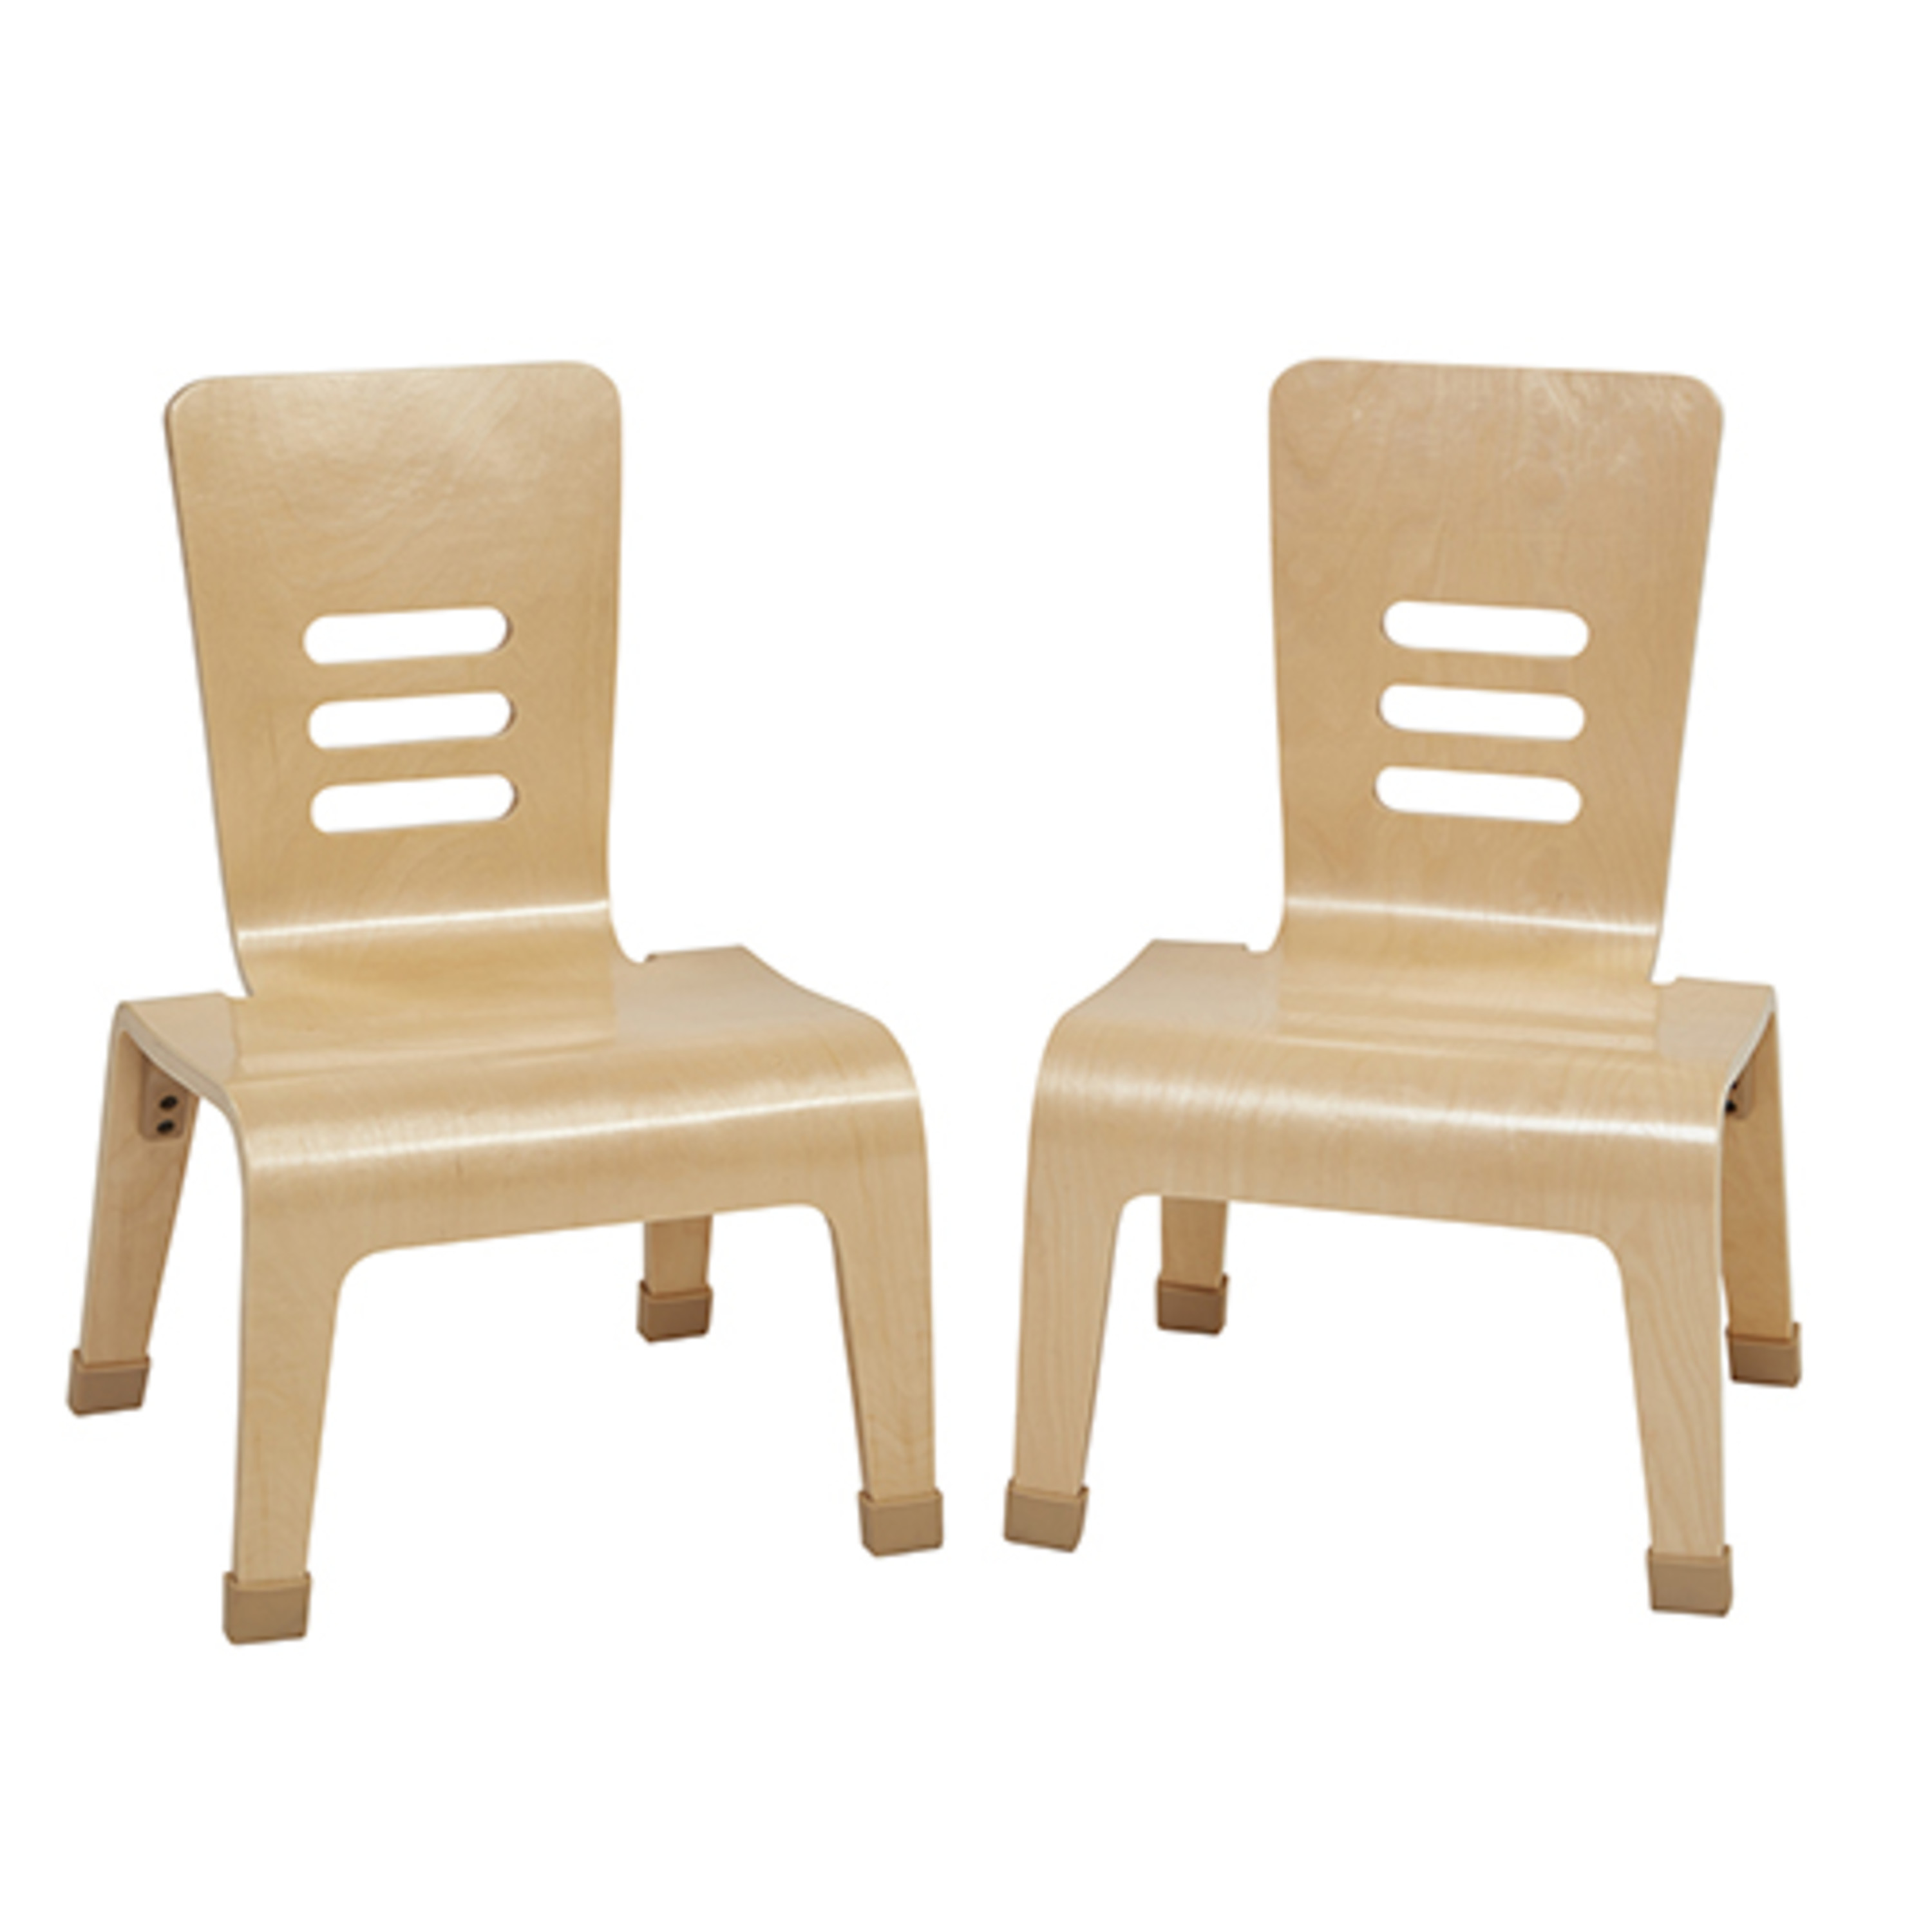 12in Bentwood Teacher Chair - Natural